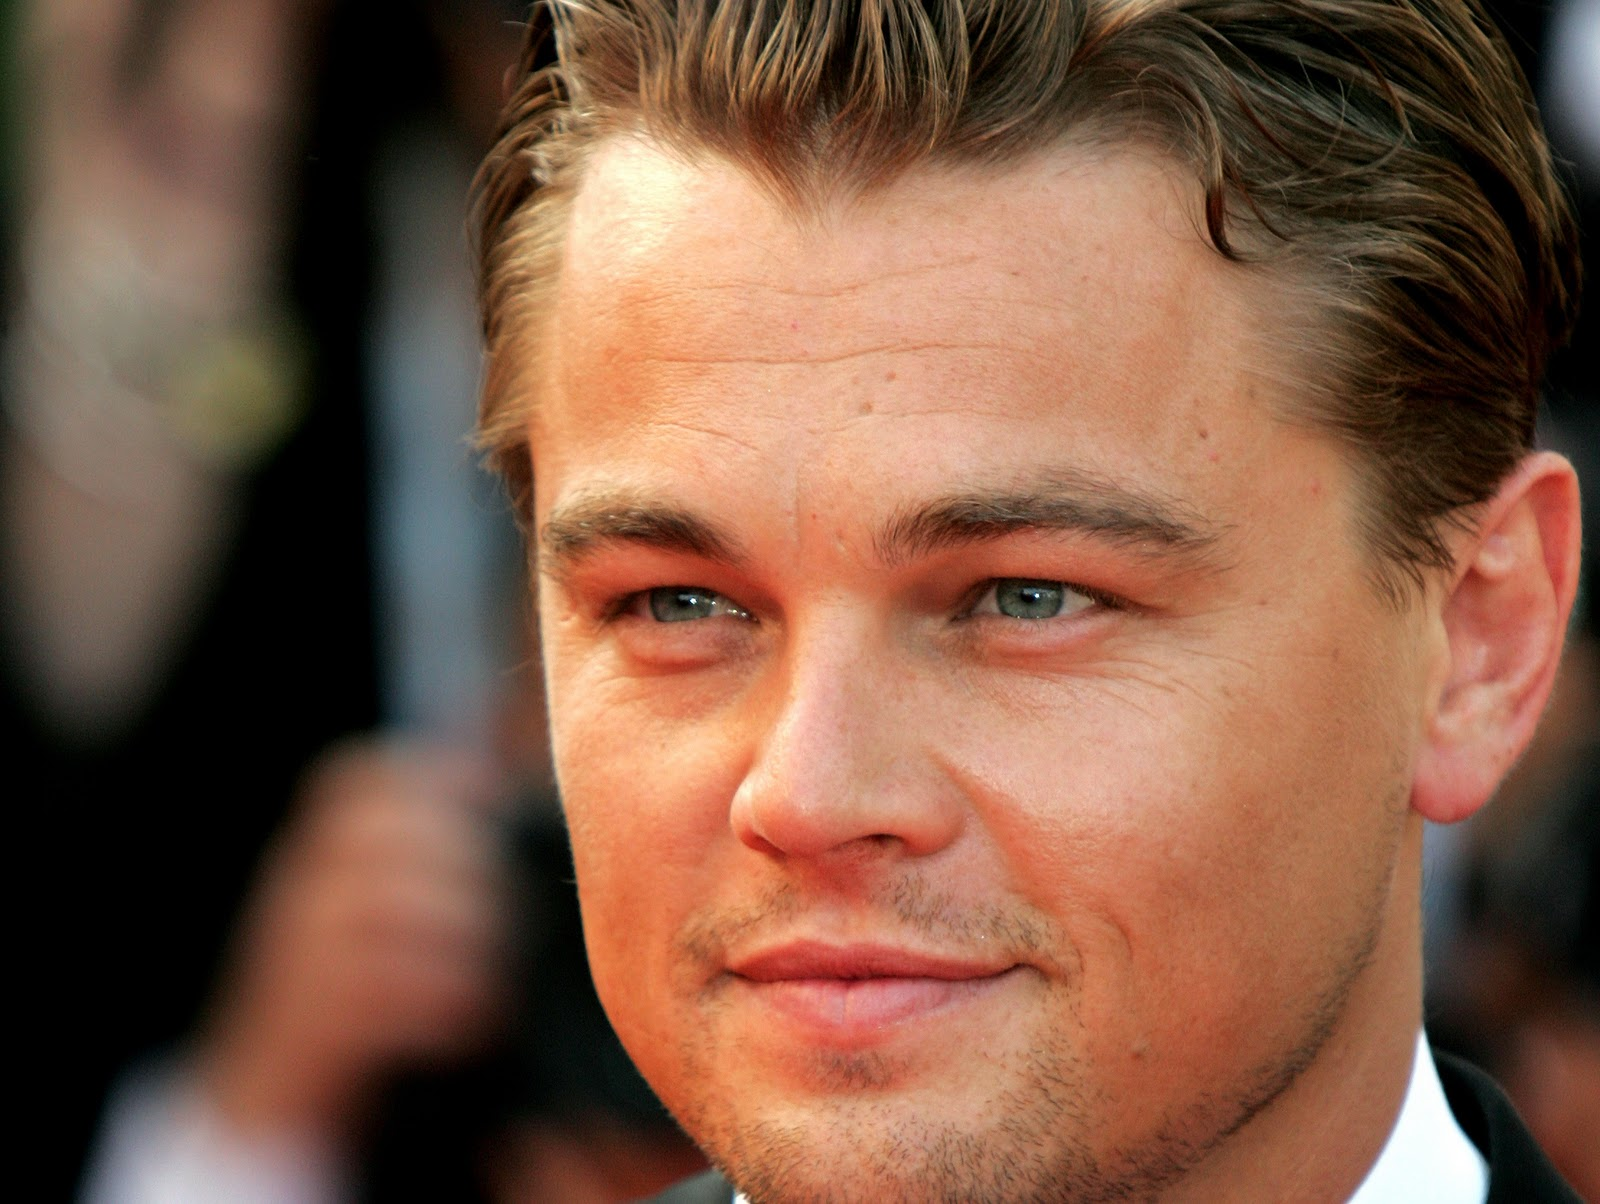 hollywood actor wallpaper picture - photo #31